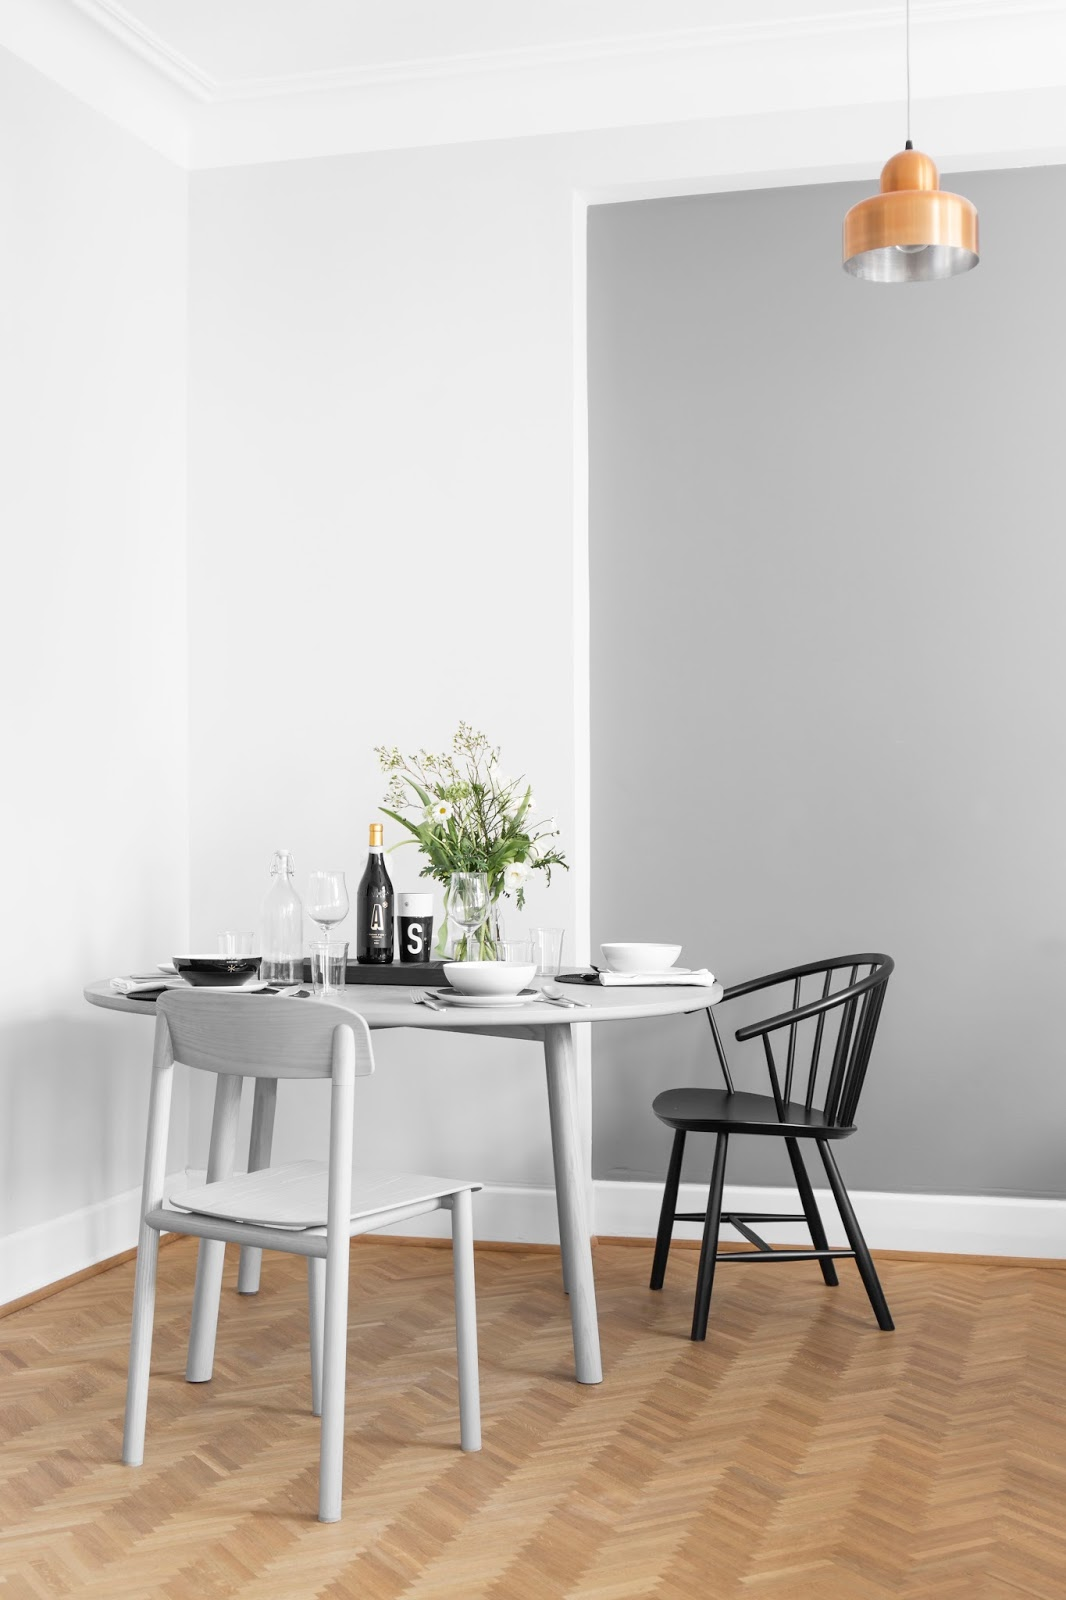 How to set a minimalist table for guests?